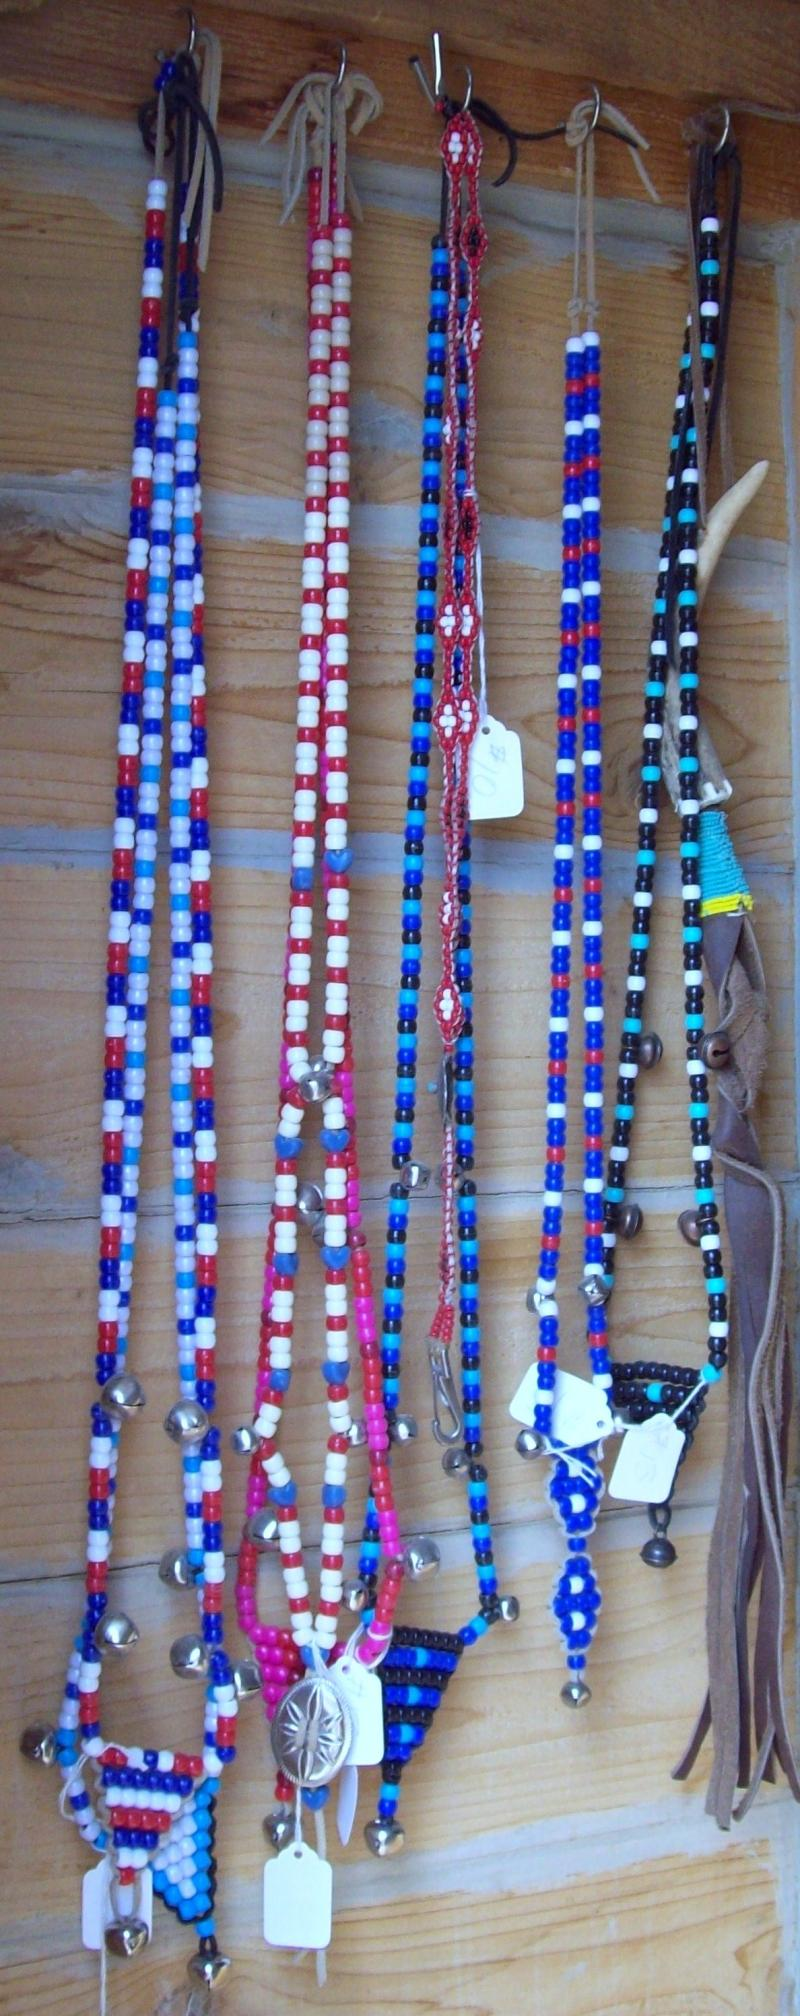 Rhythm Beads and A Beaded Riding Quirt Hang in the Trading Post